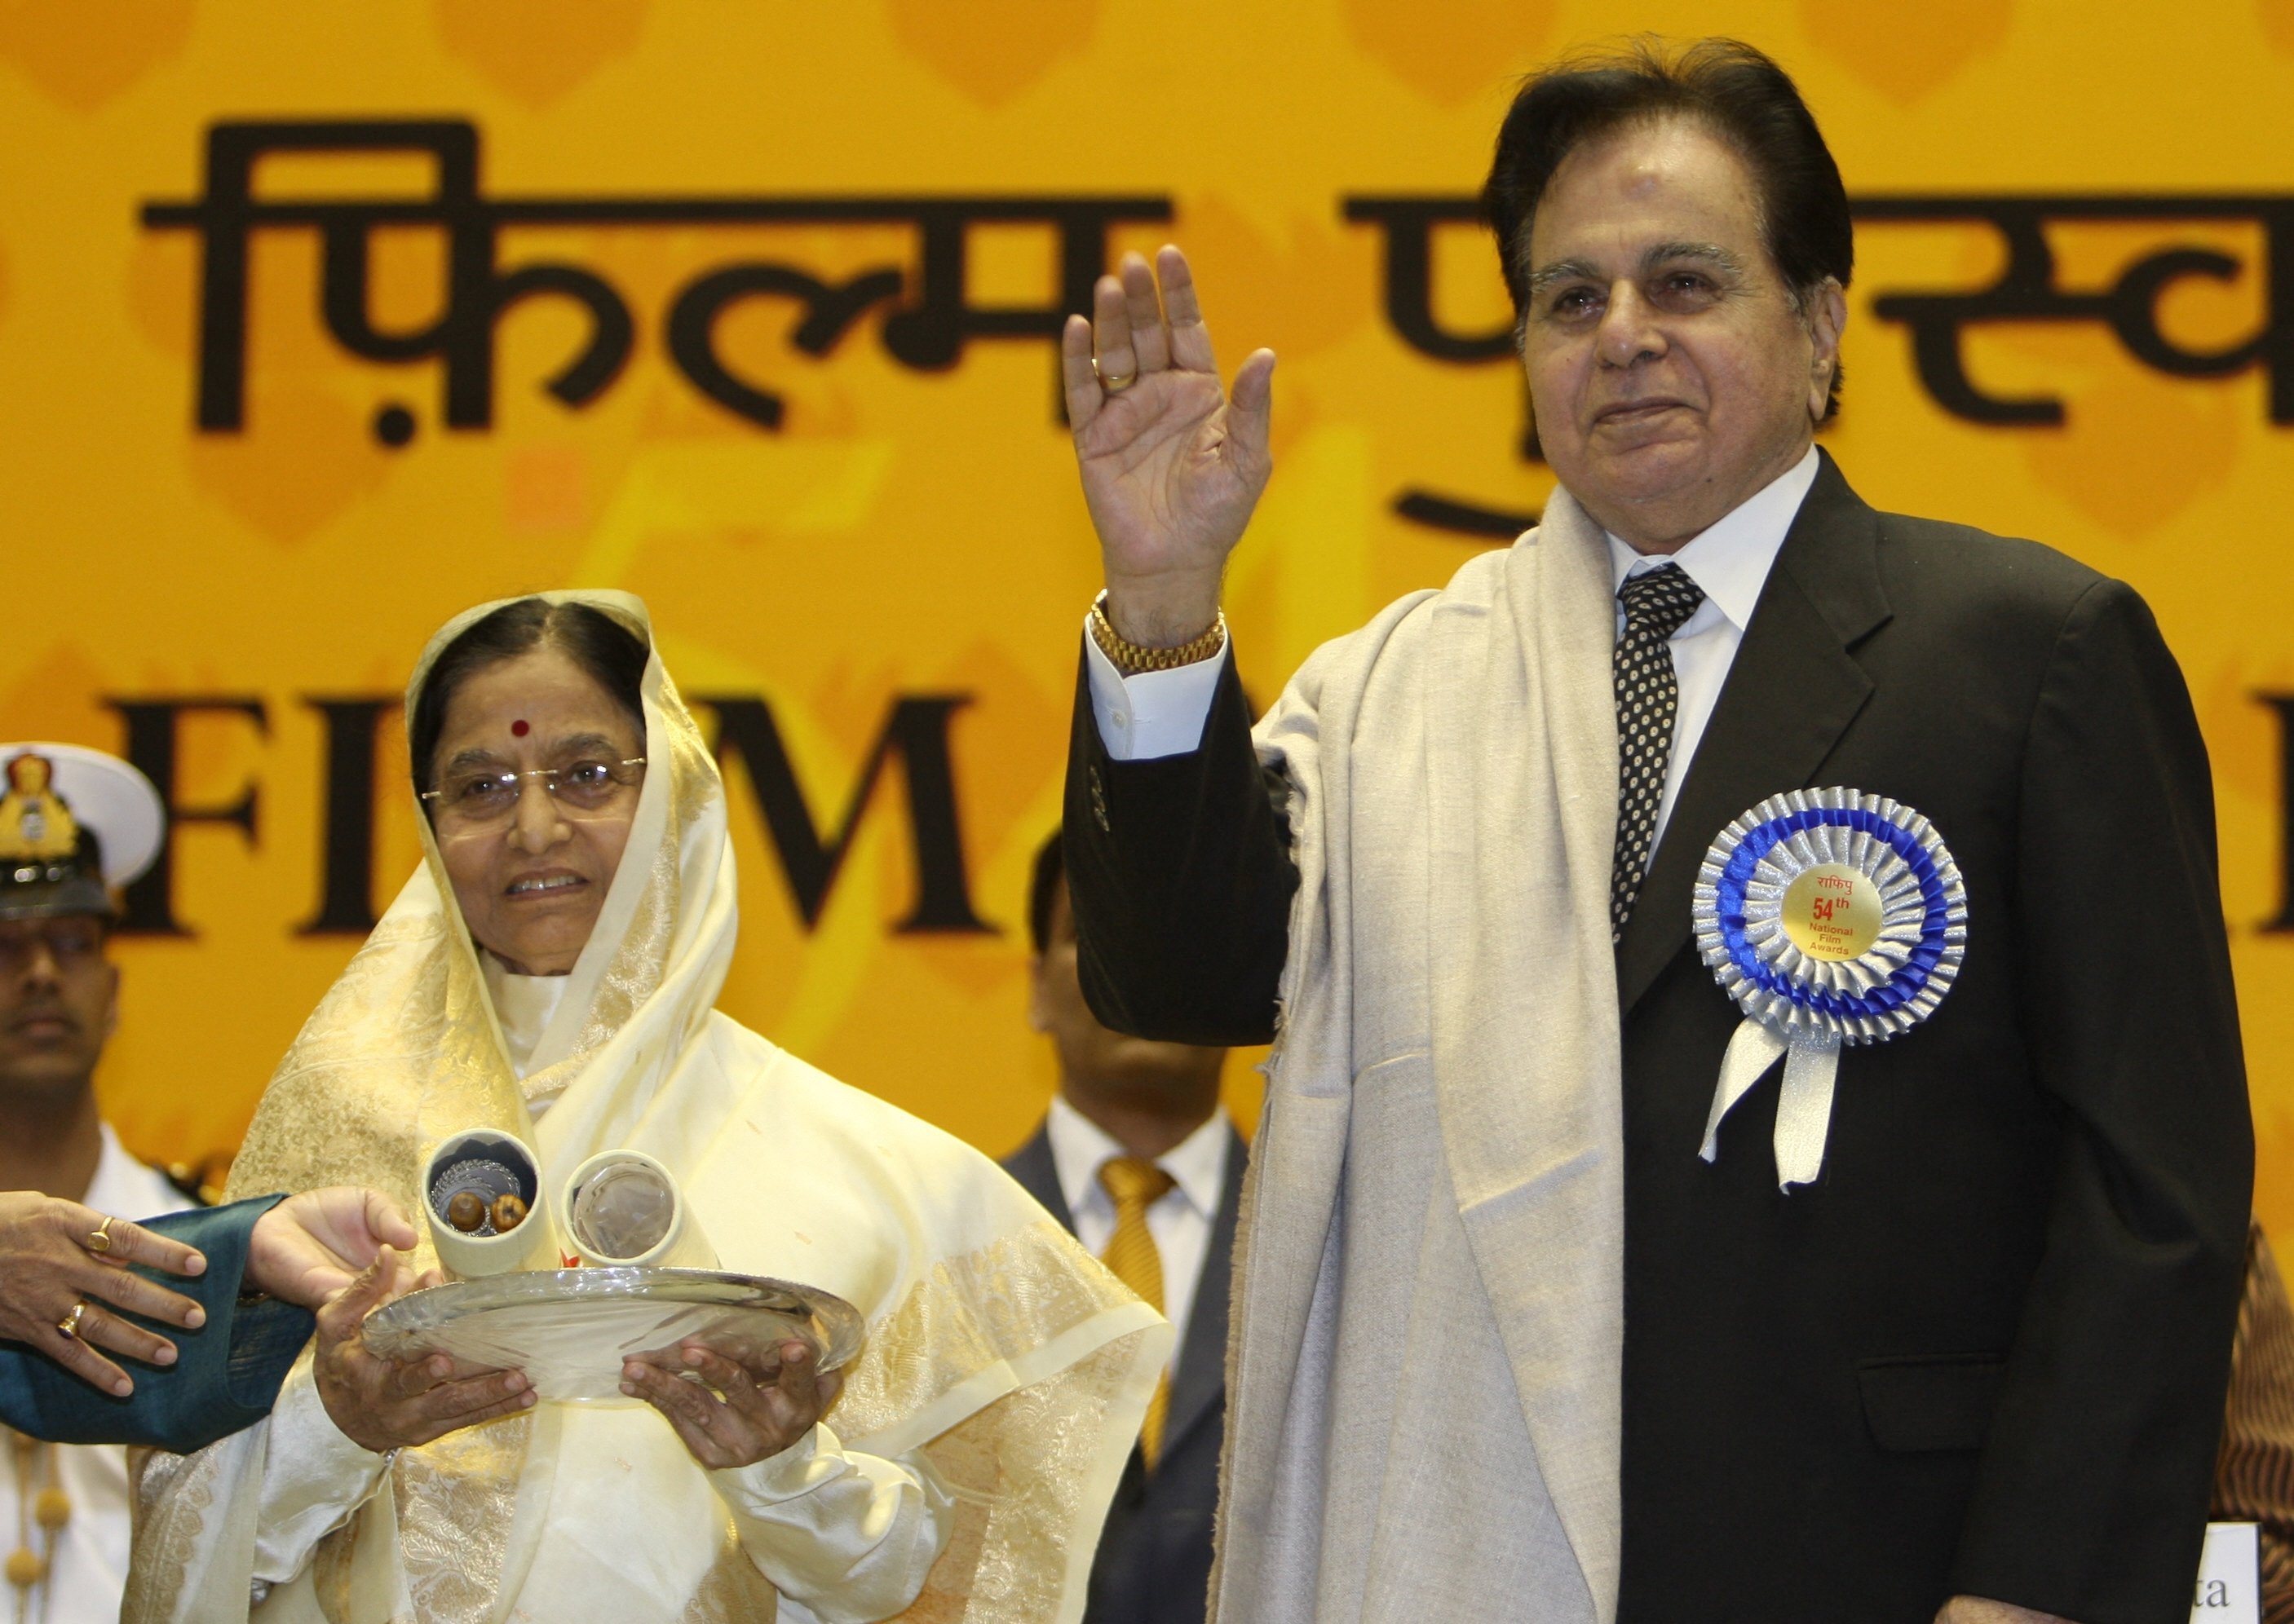 India's then-President Pratibha Patil (L) presents The Life Time Achievement award to Bollywood actor Dilip Kumar (R) at the 54th National Film Awards Function in New Delhi, India, Sept. 3, 2008. (AFP File Photo)